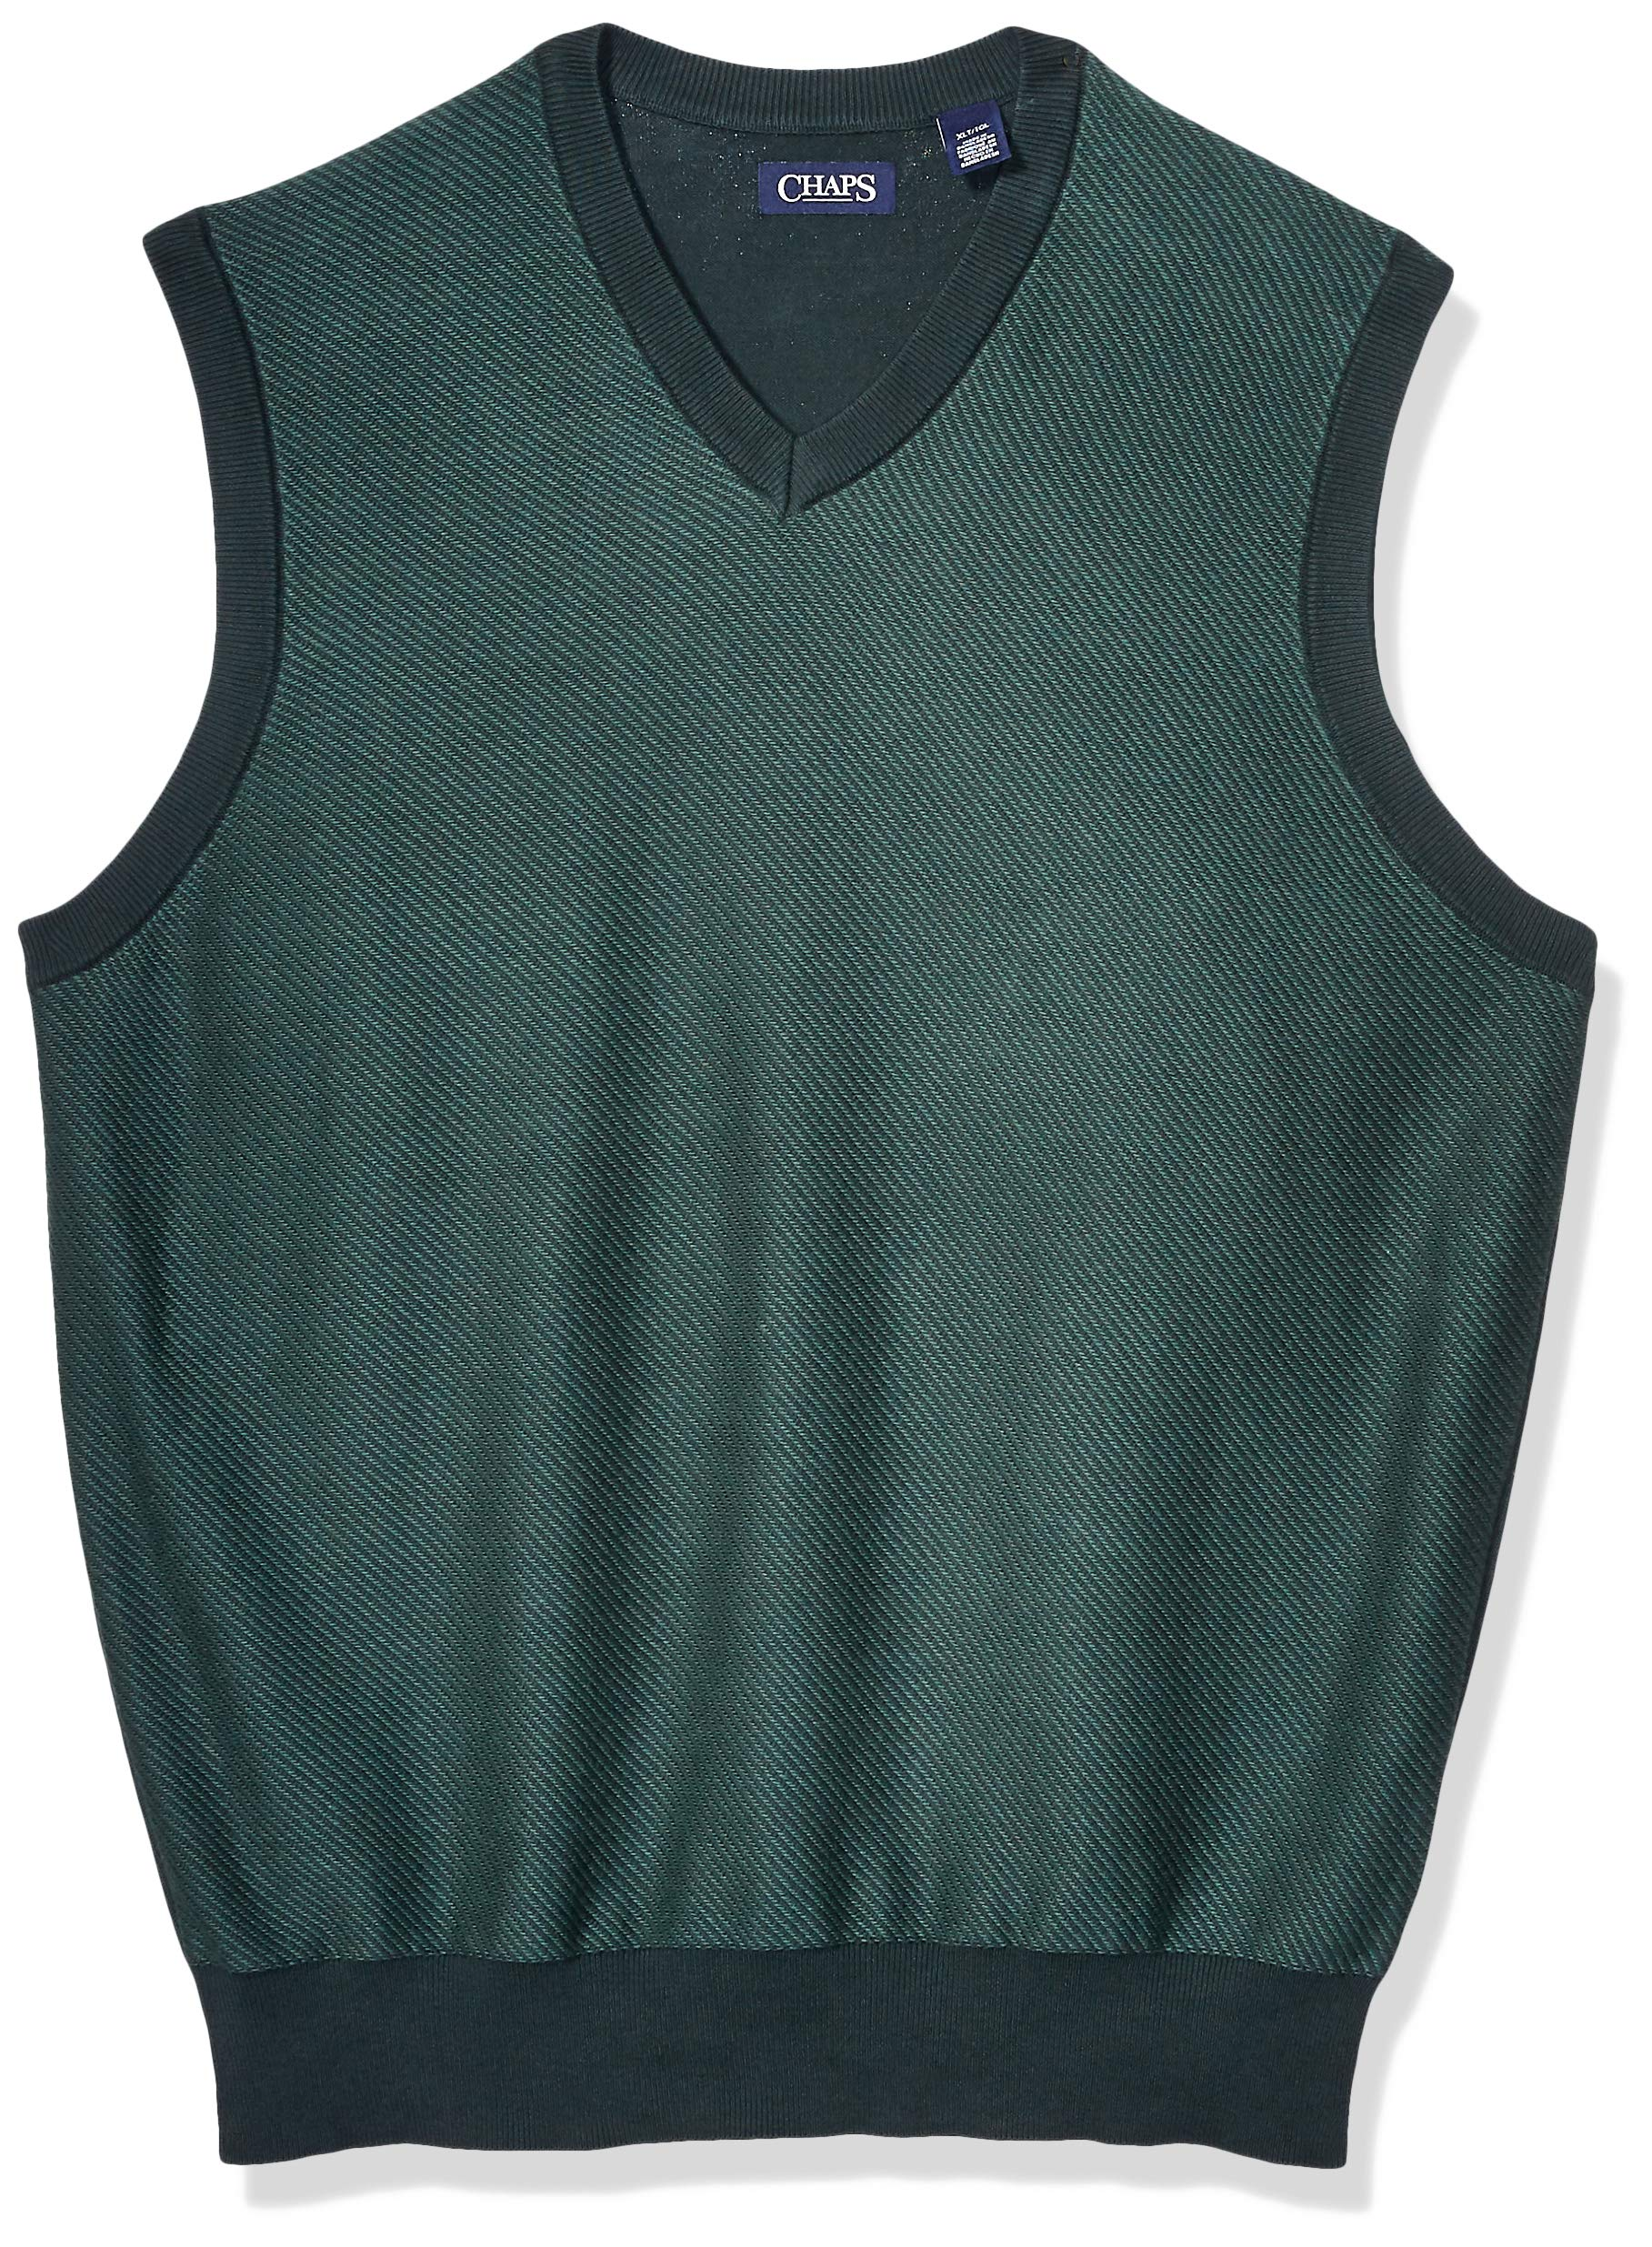 Chaps Men's Big and Tall Cotton V-Neck Sweater Vest, Hunt Club Green Multi, 3XLT by Chaps